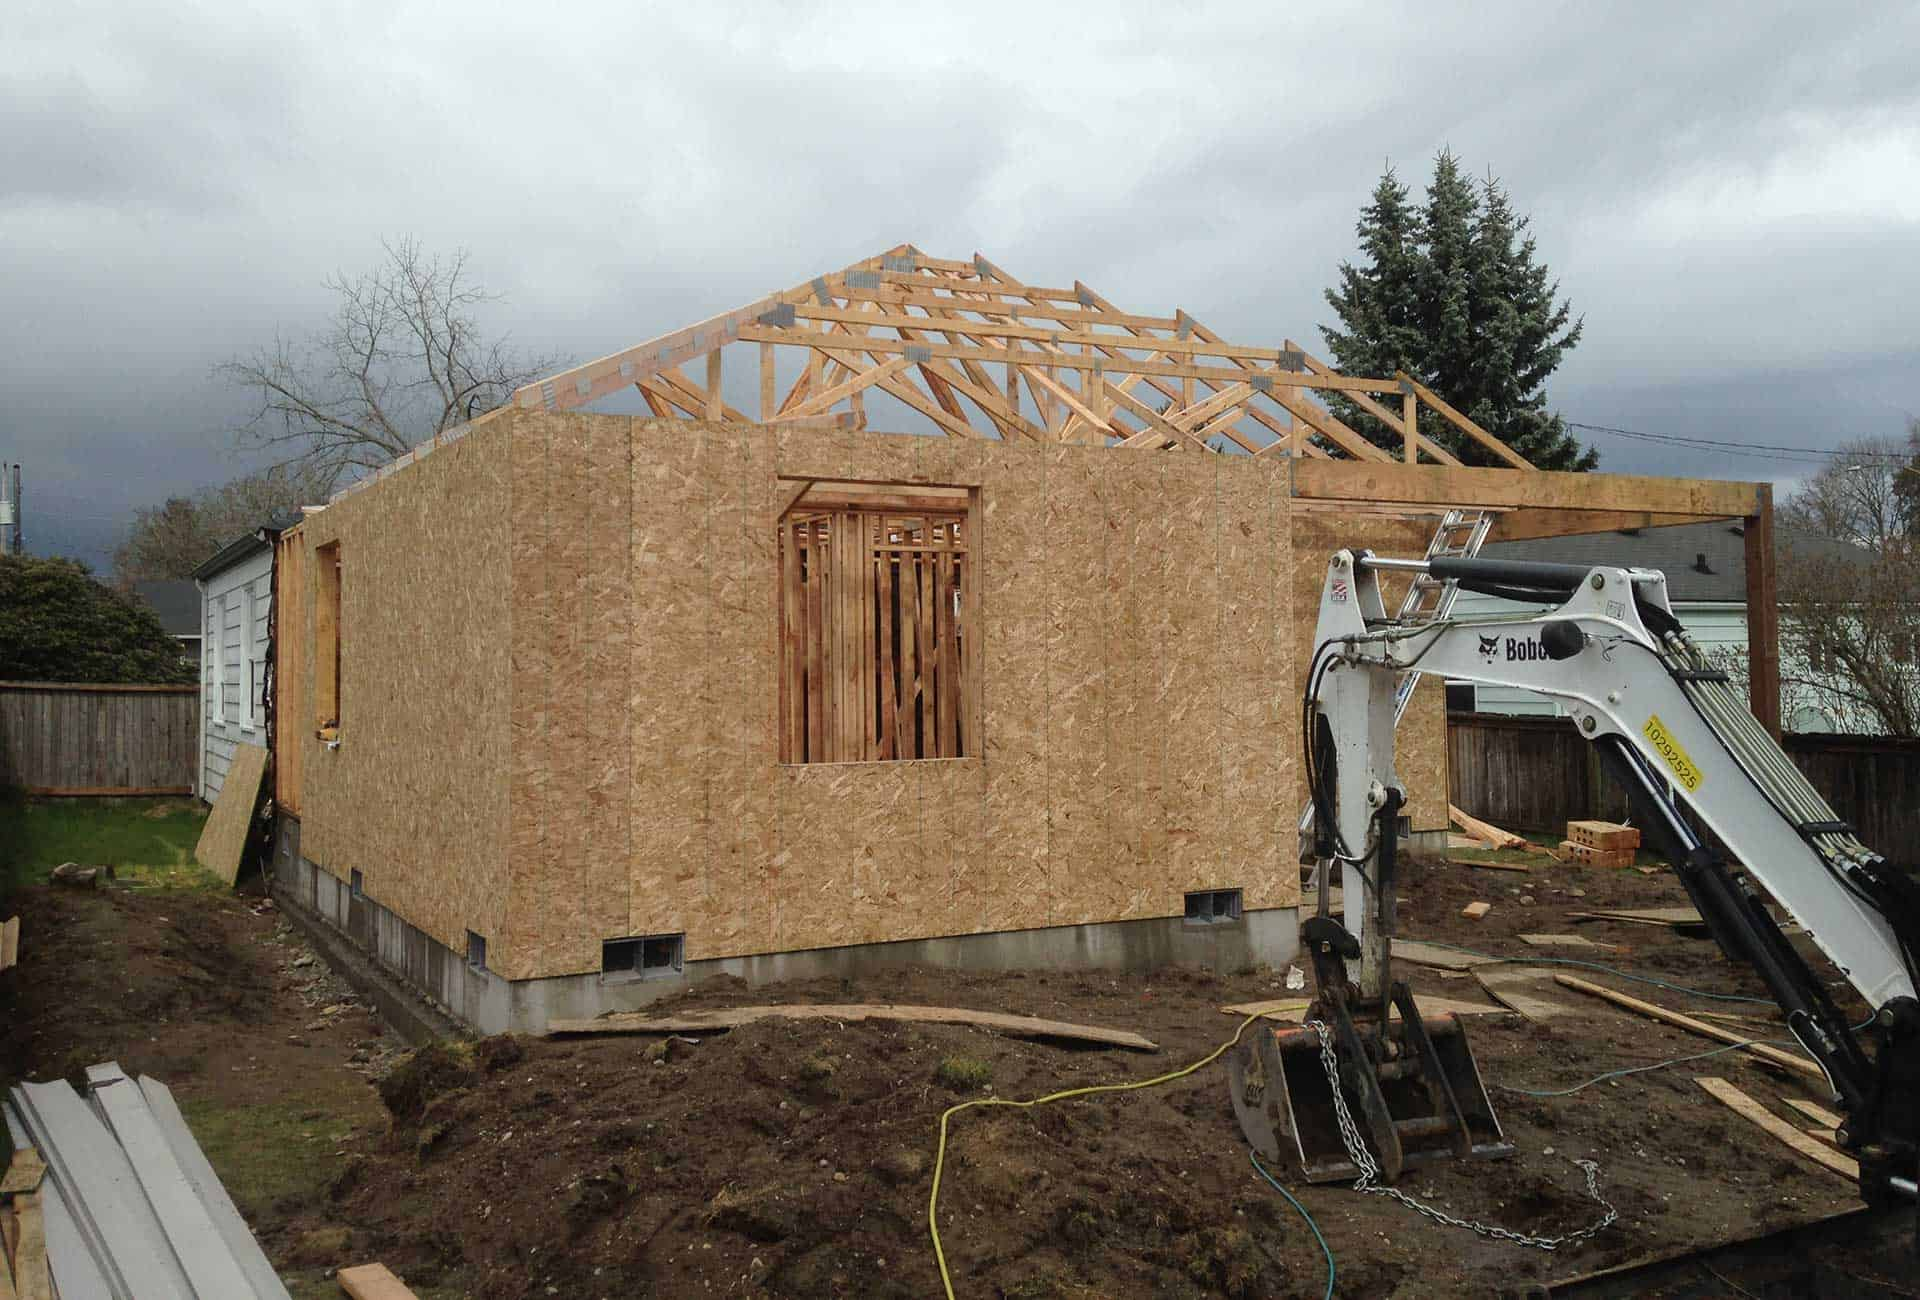 During construction of residential addition of covered porch